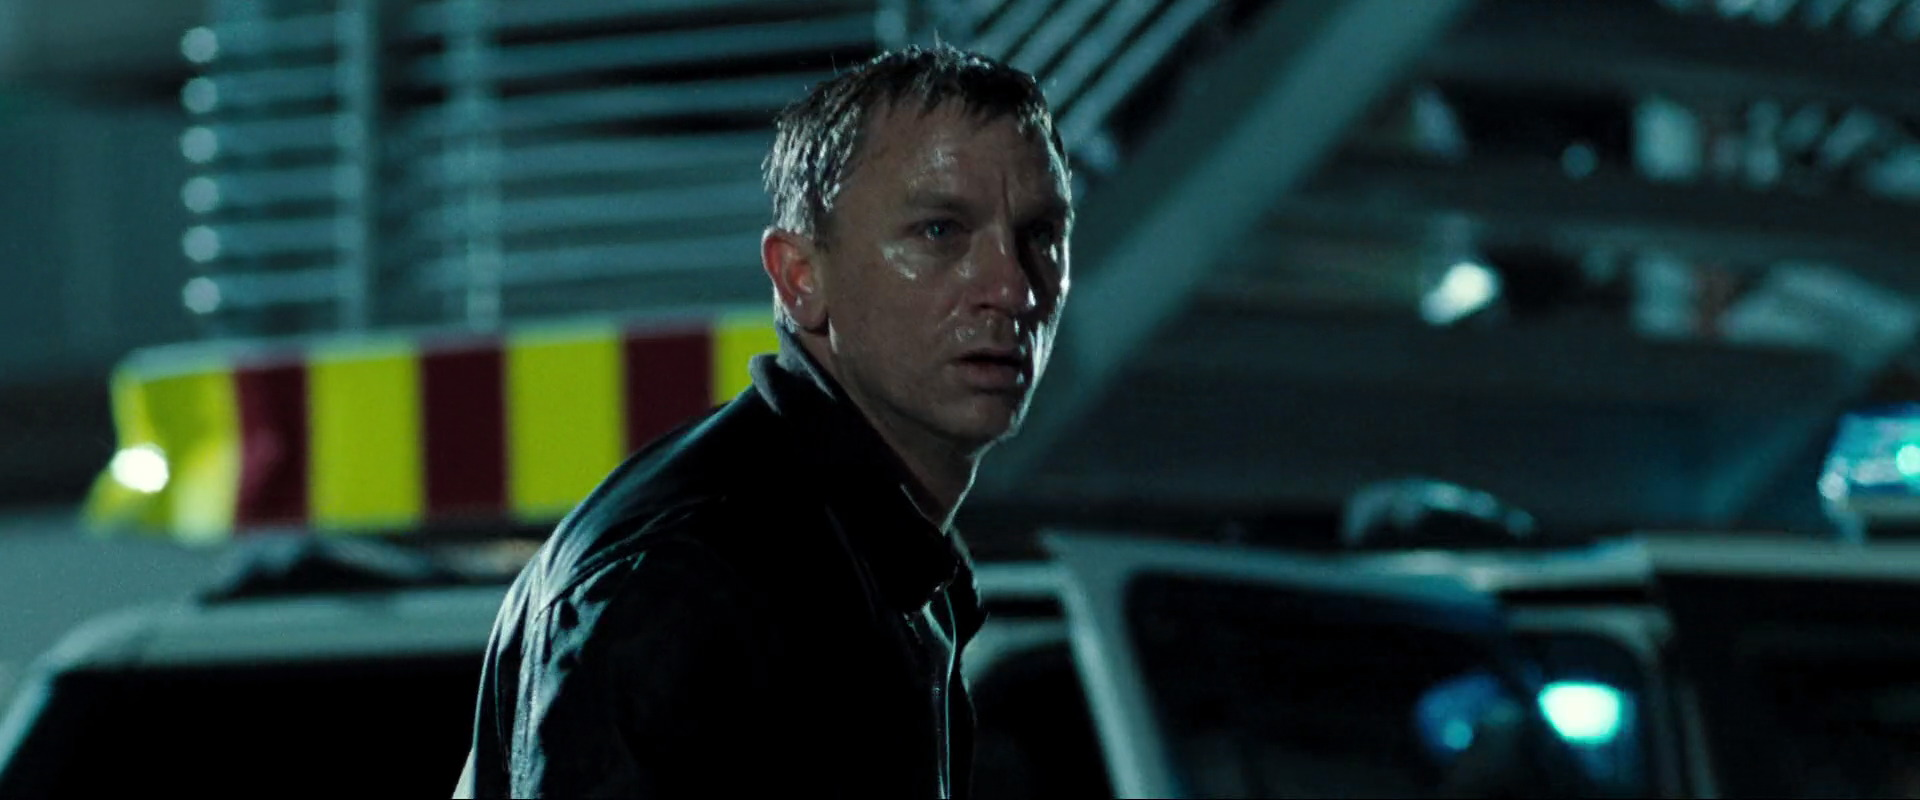 casino-royale-movie-screencaps.com-5447.jpg?strip=all